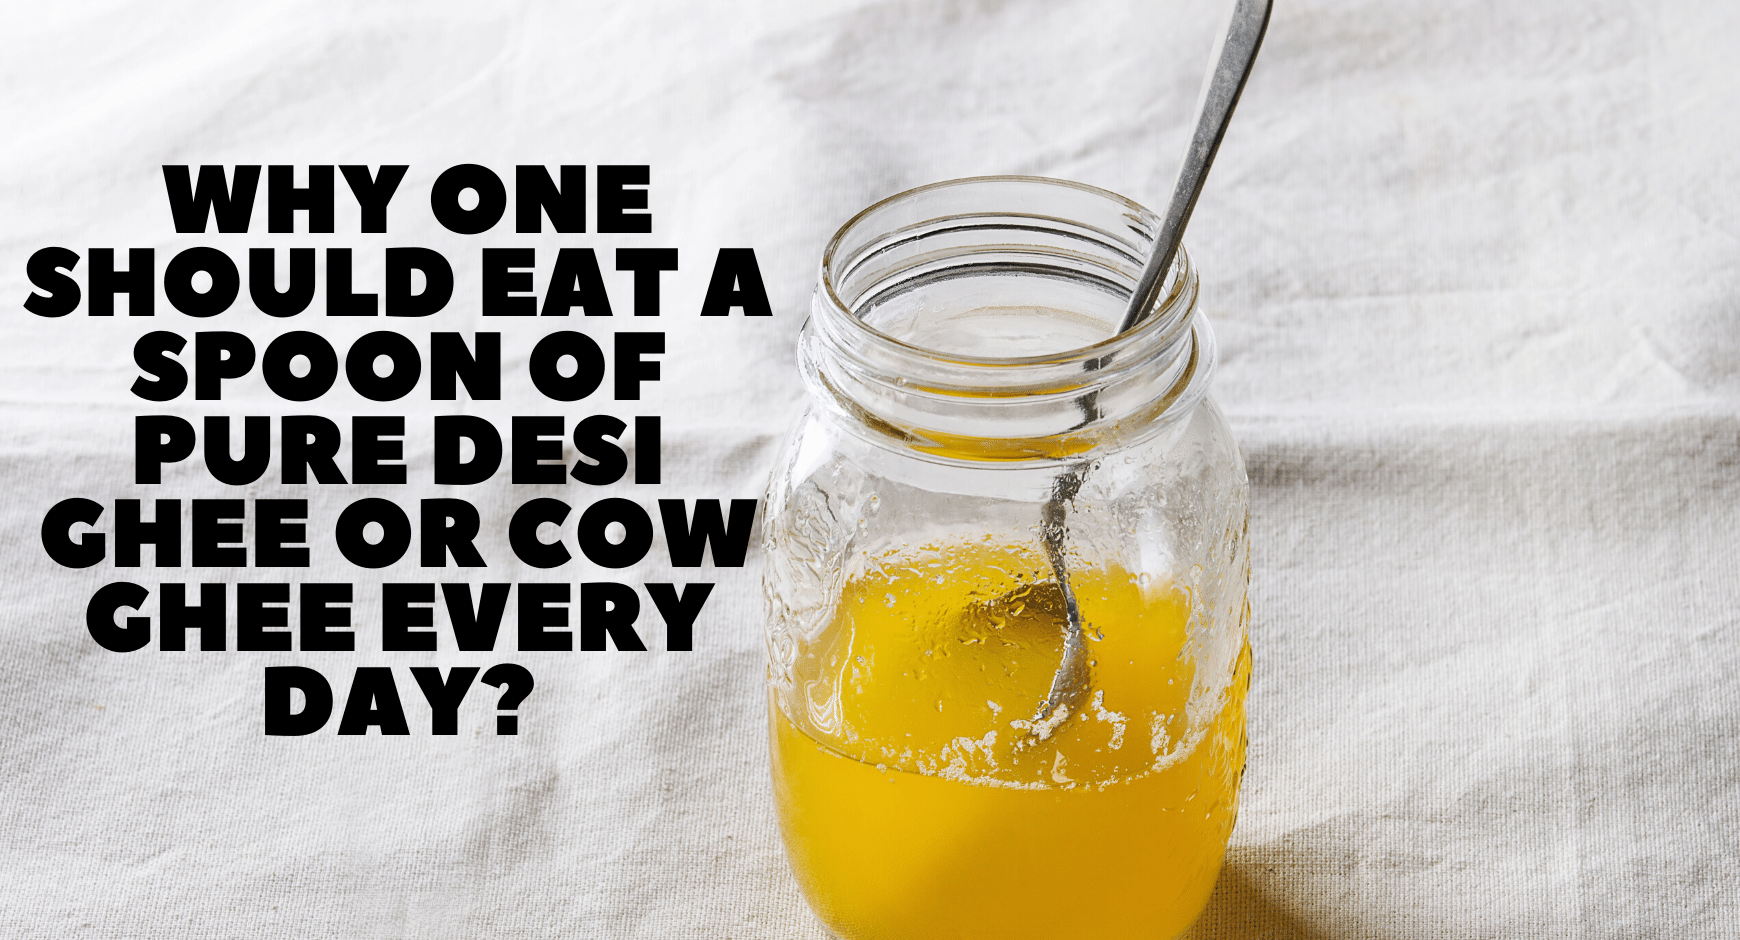 Why one should eat a spoon of pure Desi Ghee or Cow Ghee every day?